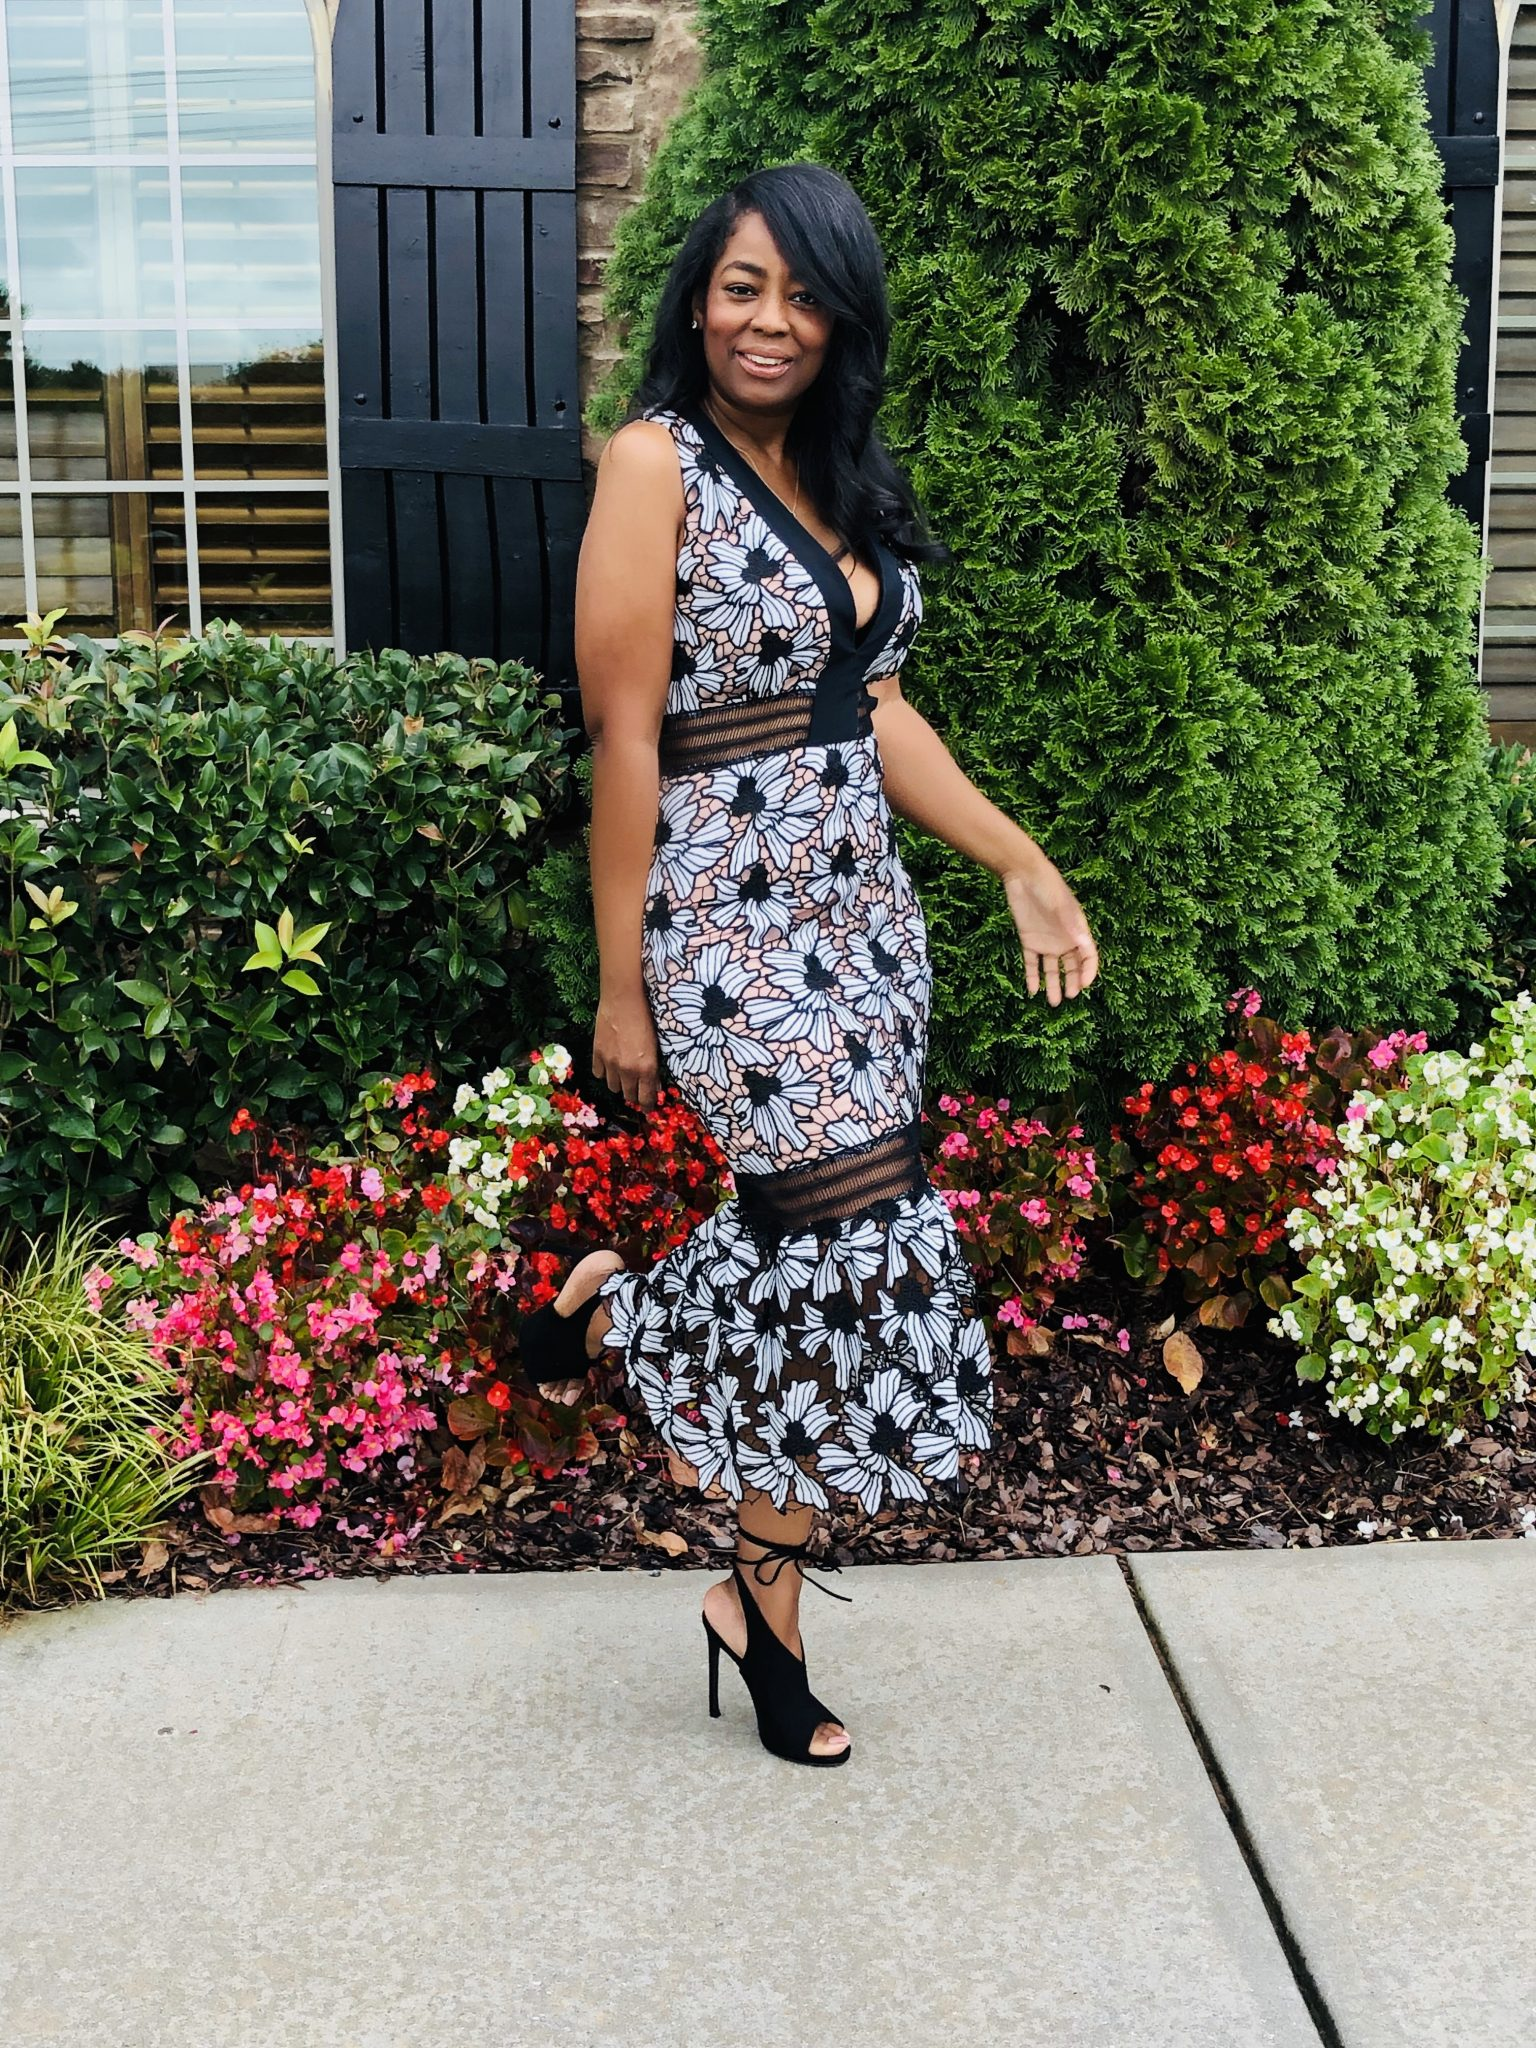 My Style: Rent The Runway Nicole Miller White Floral Lace Ruffle Dress